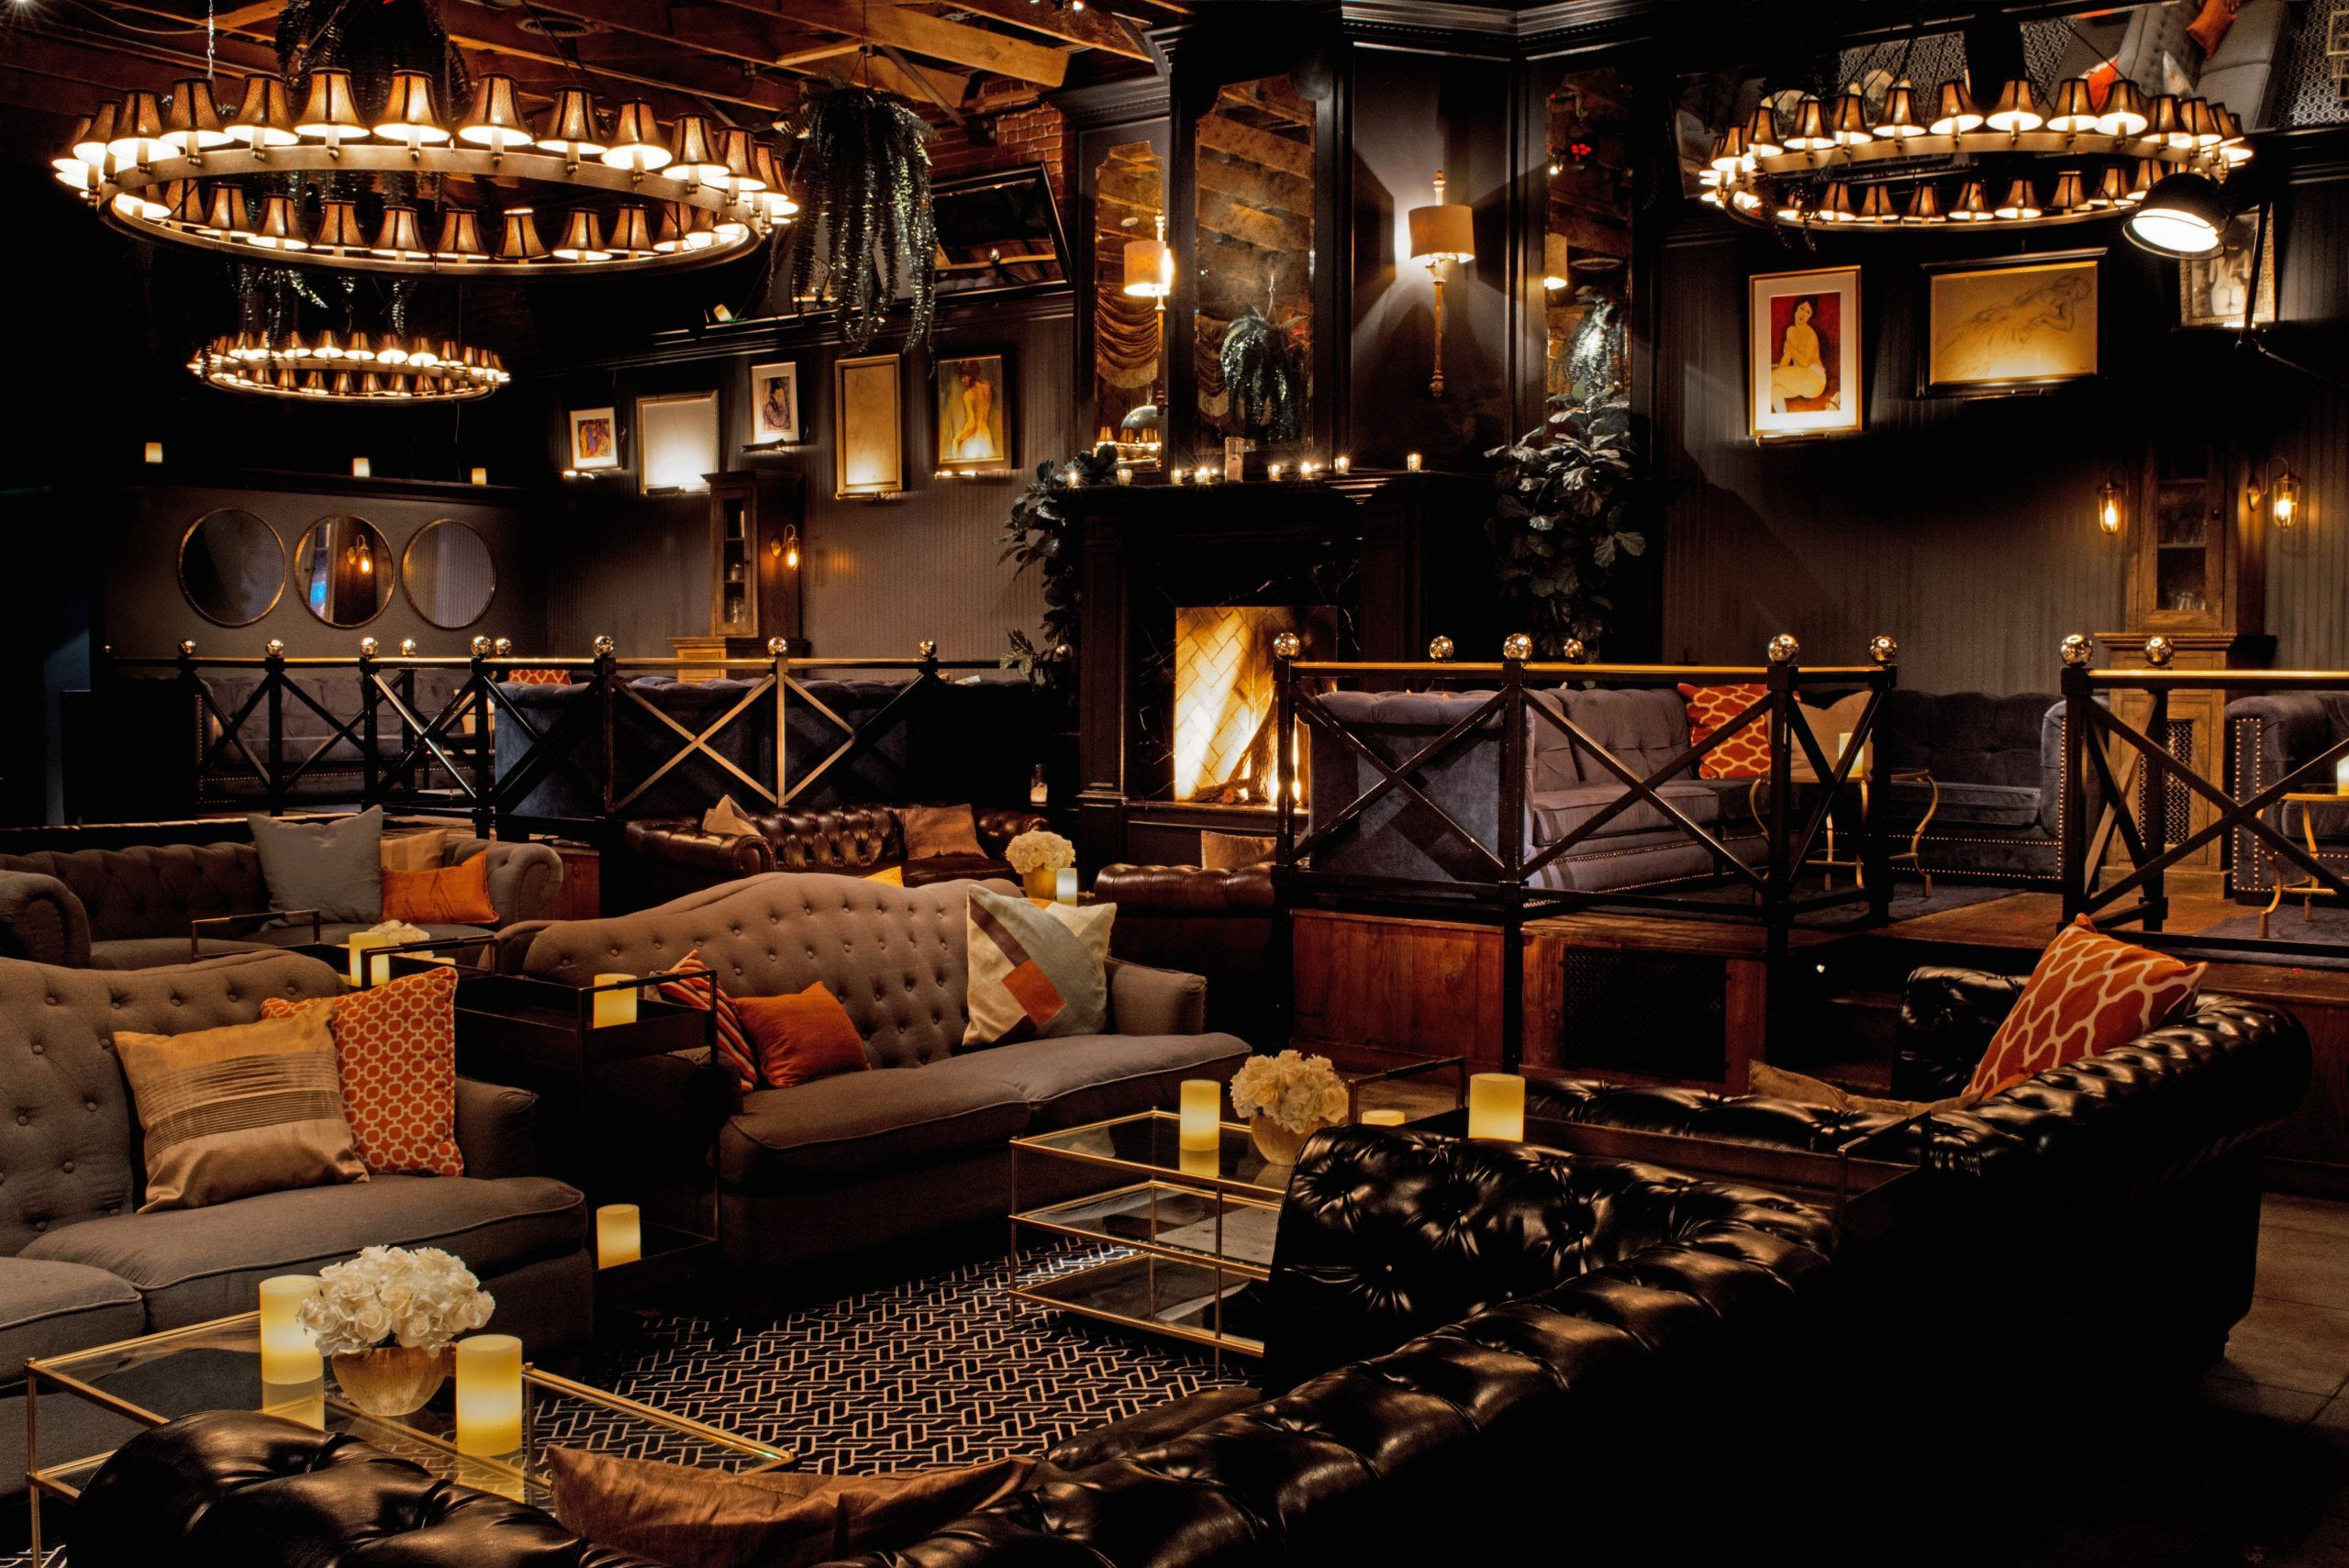 11 Los Angeles Bars for Design Enthusiasts#angeles #bars #design #enthusiasts #los